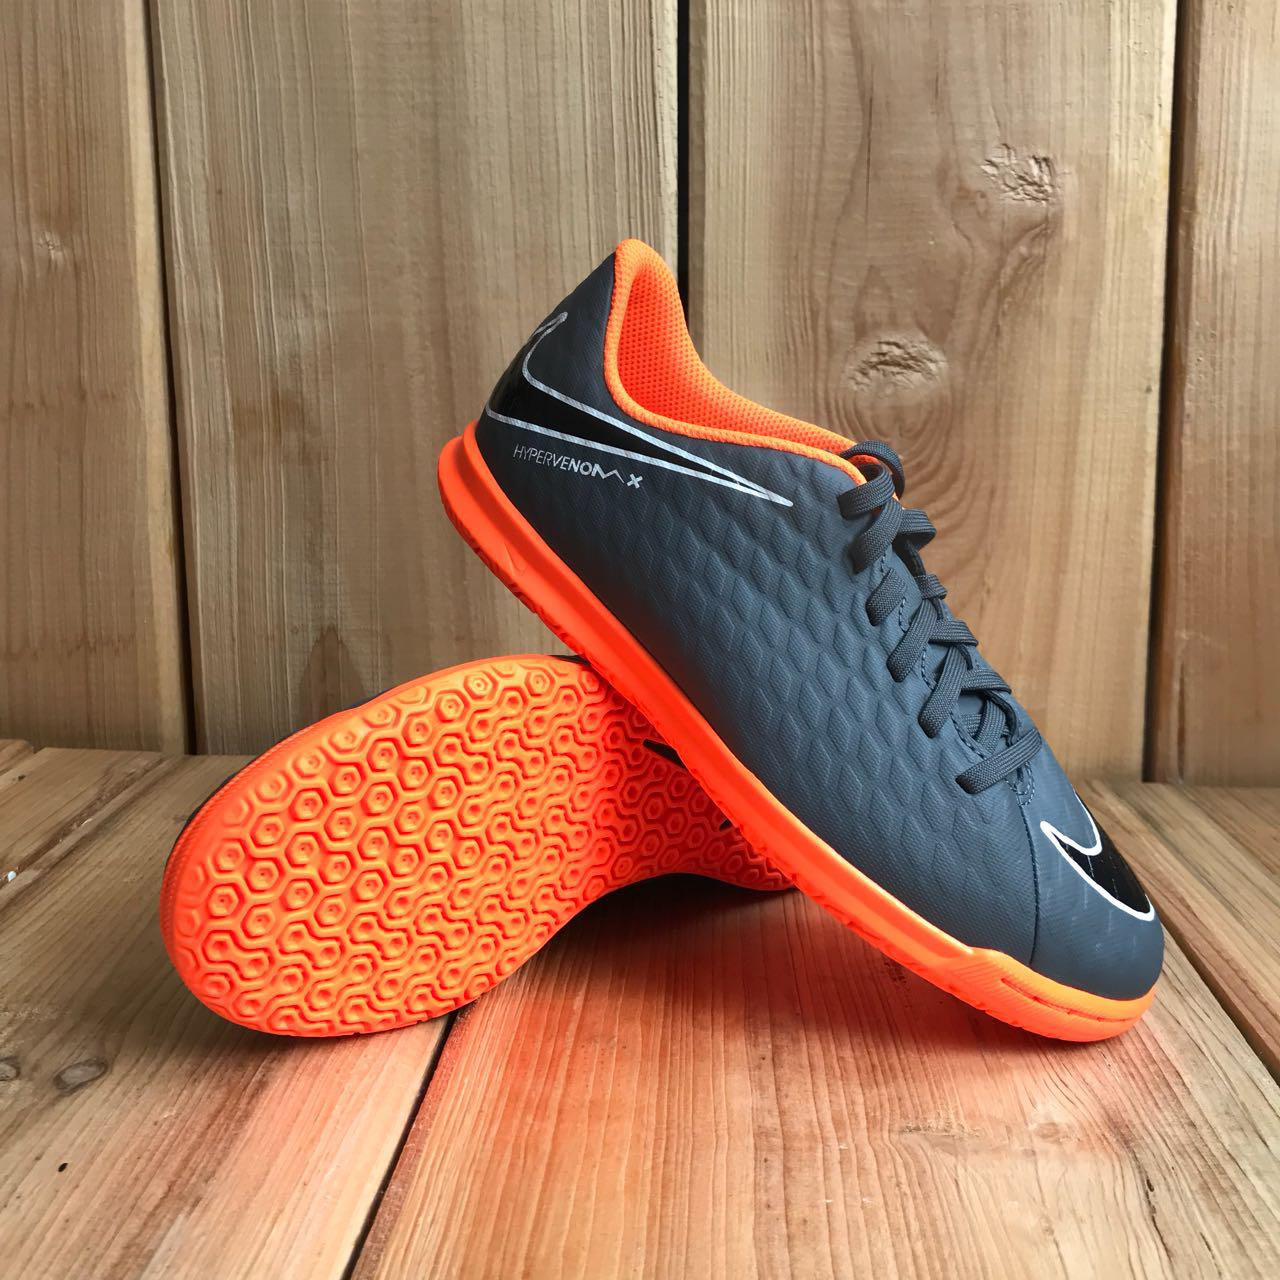 846dd45359cfb9 Детские Футзалки Nike HypervenomX Phantom 3 Club IC AH7296-081 (Оригинал)  34 (21.5 См) — в Категории